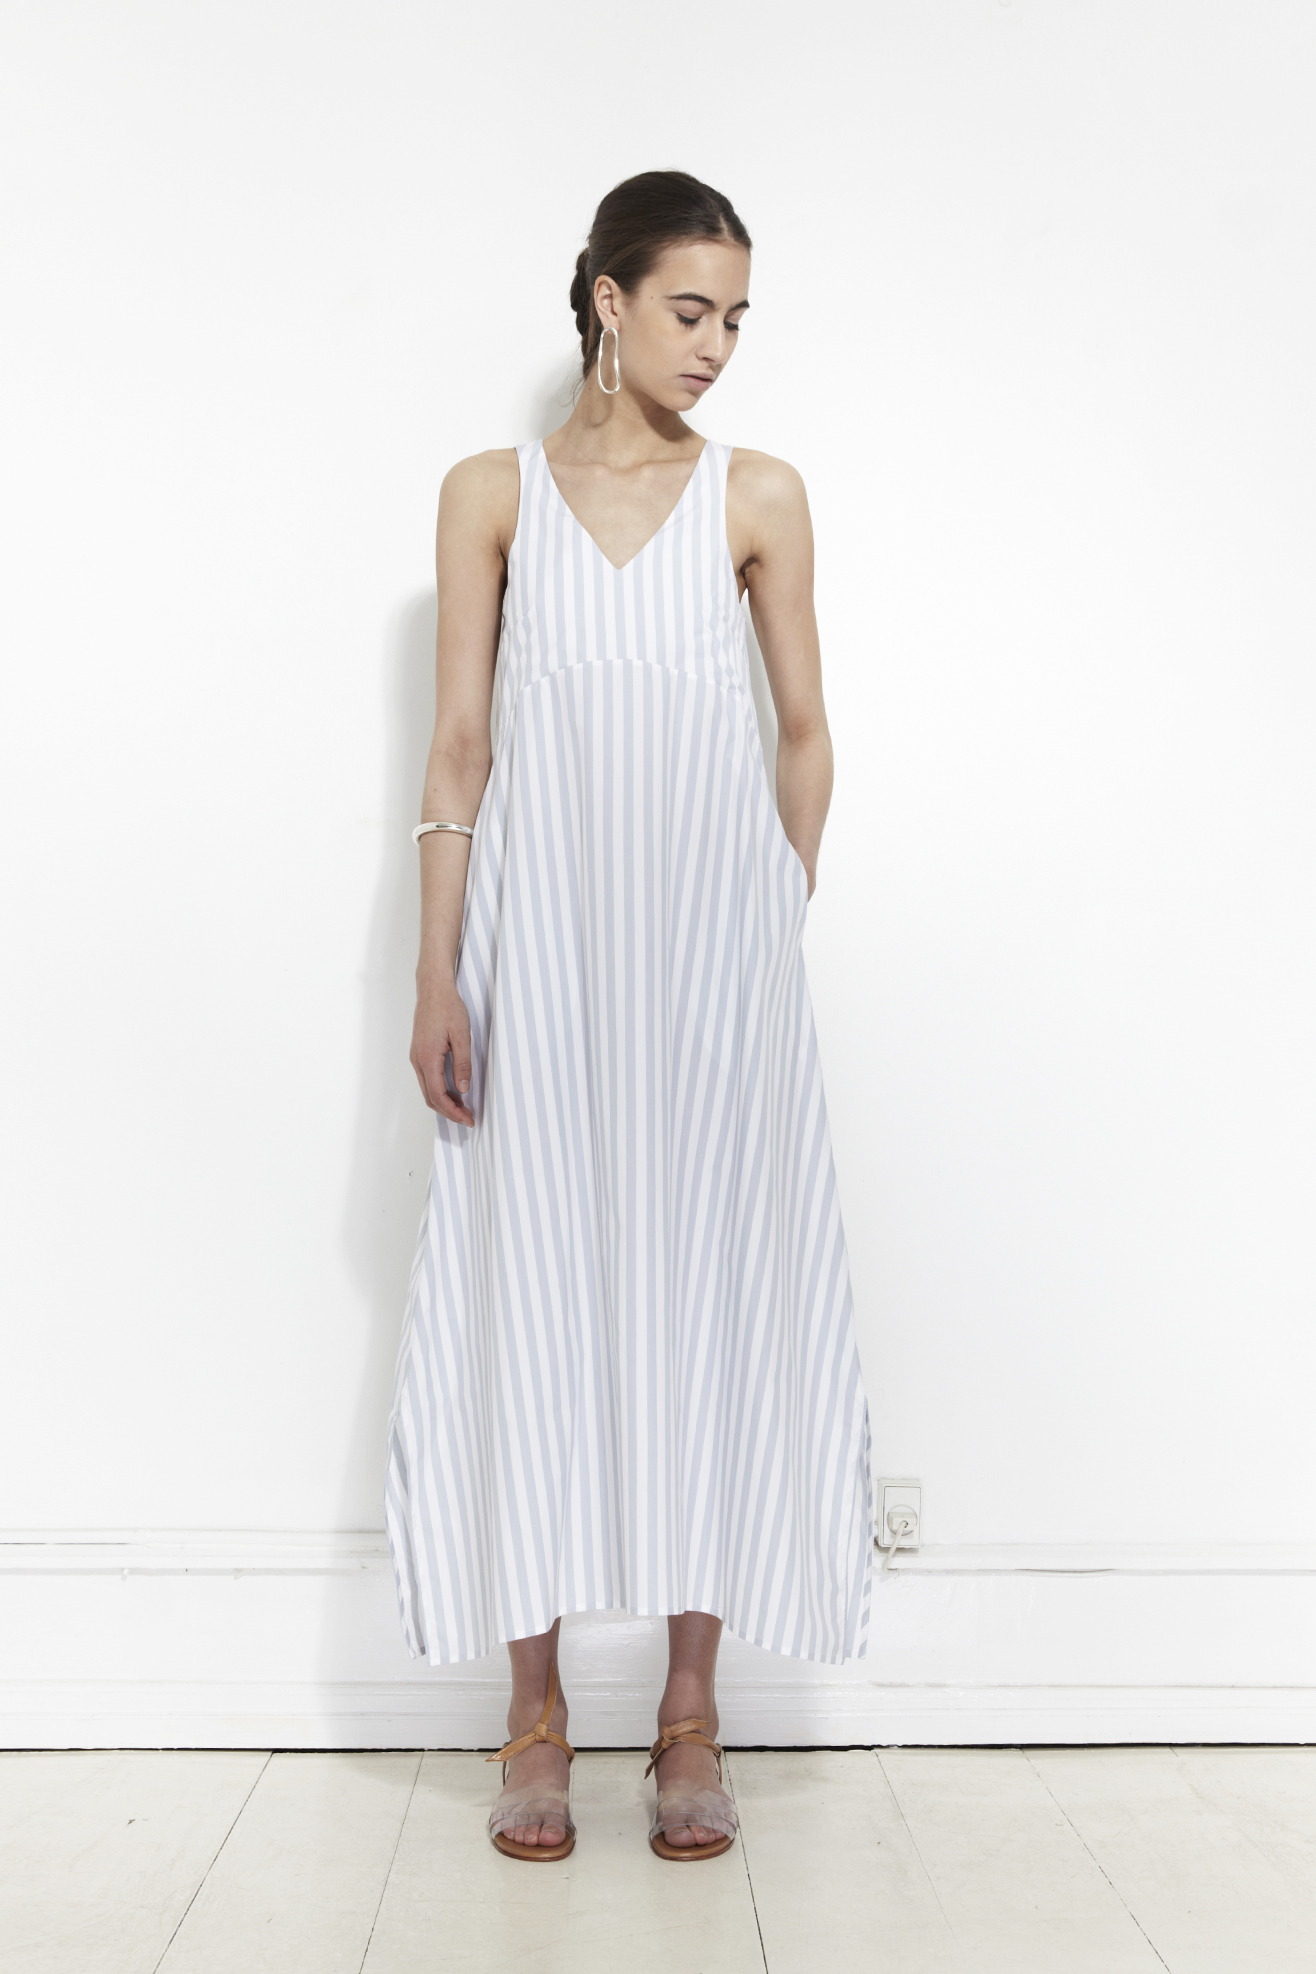 Wide summer dress by Mr. Larkin | Copenhagen based clothing label